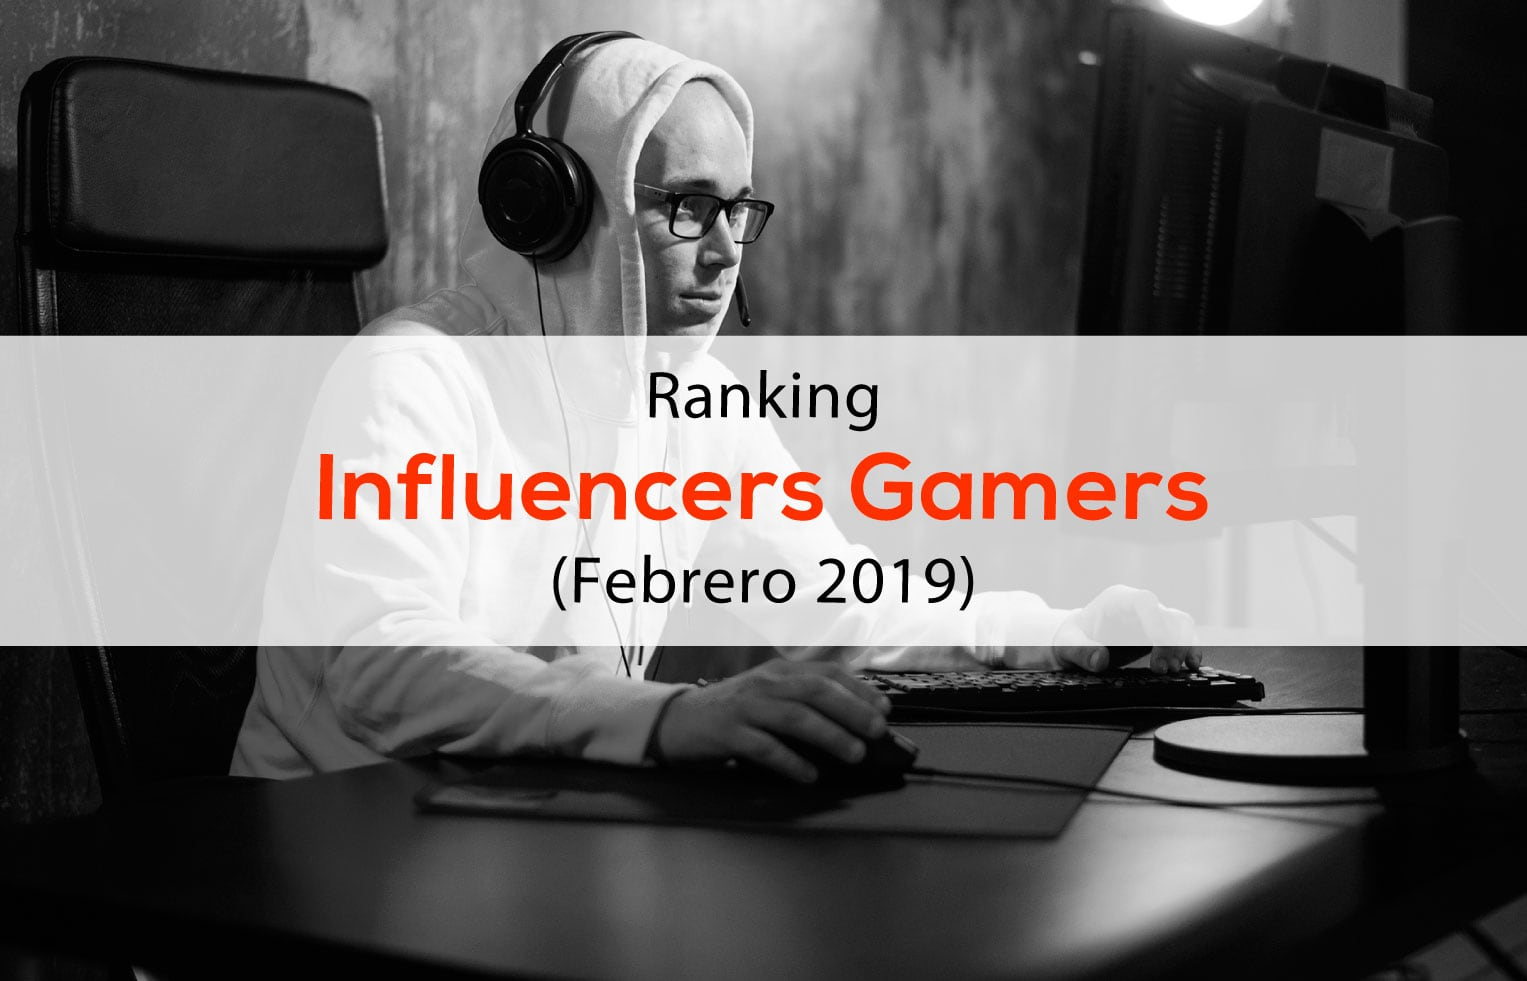 Ranking Influencers Gamers